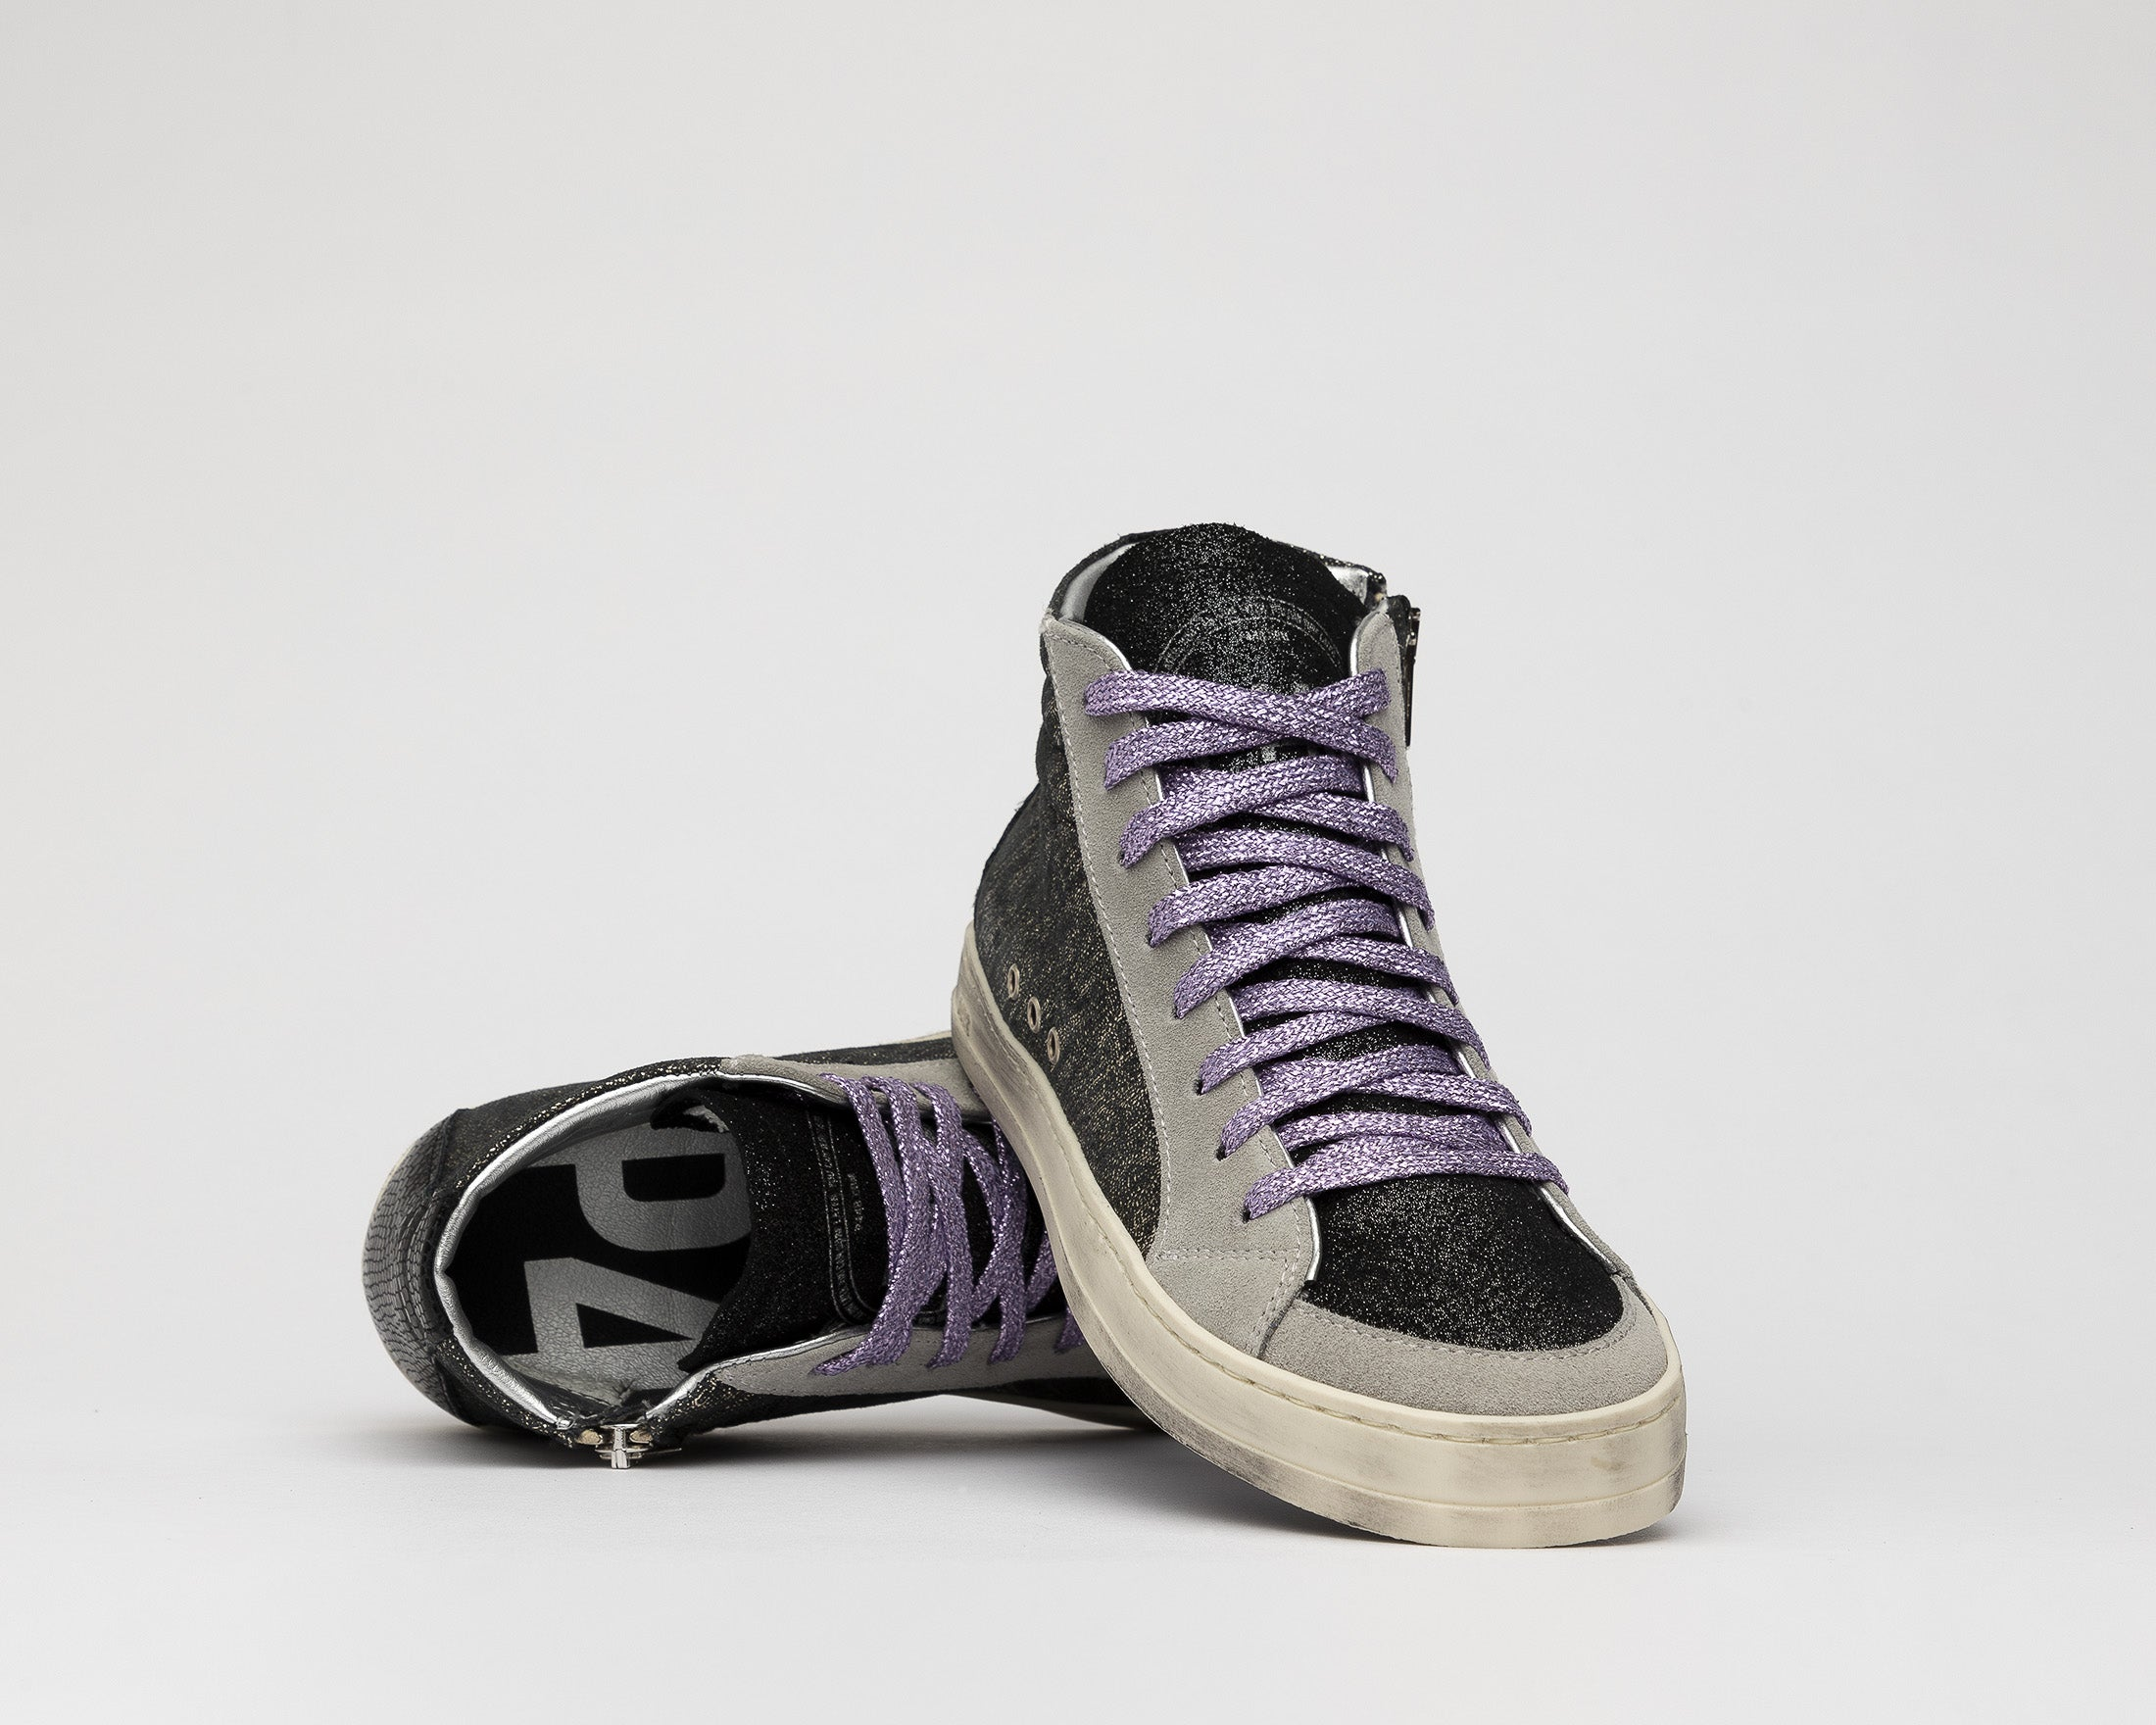 Skate High-Top Sneaker in Black/Loft - Detail 2